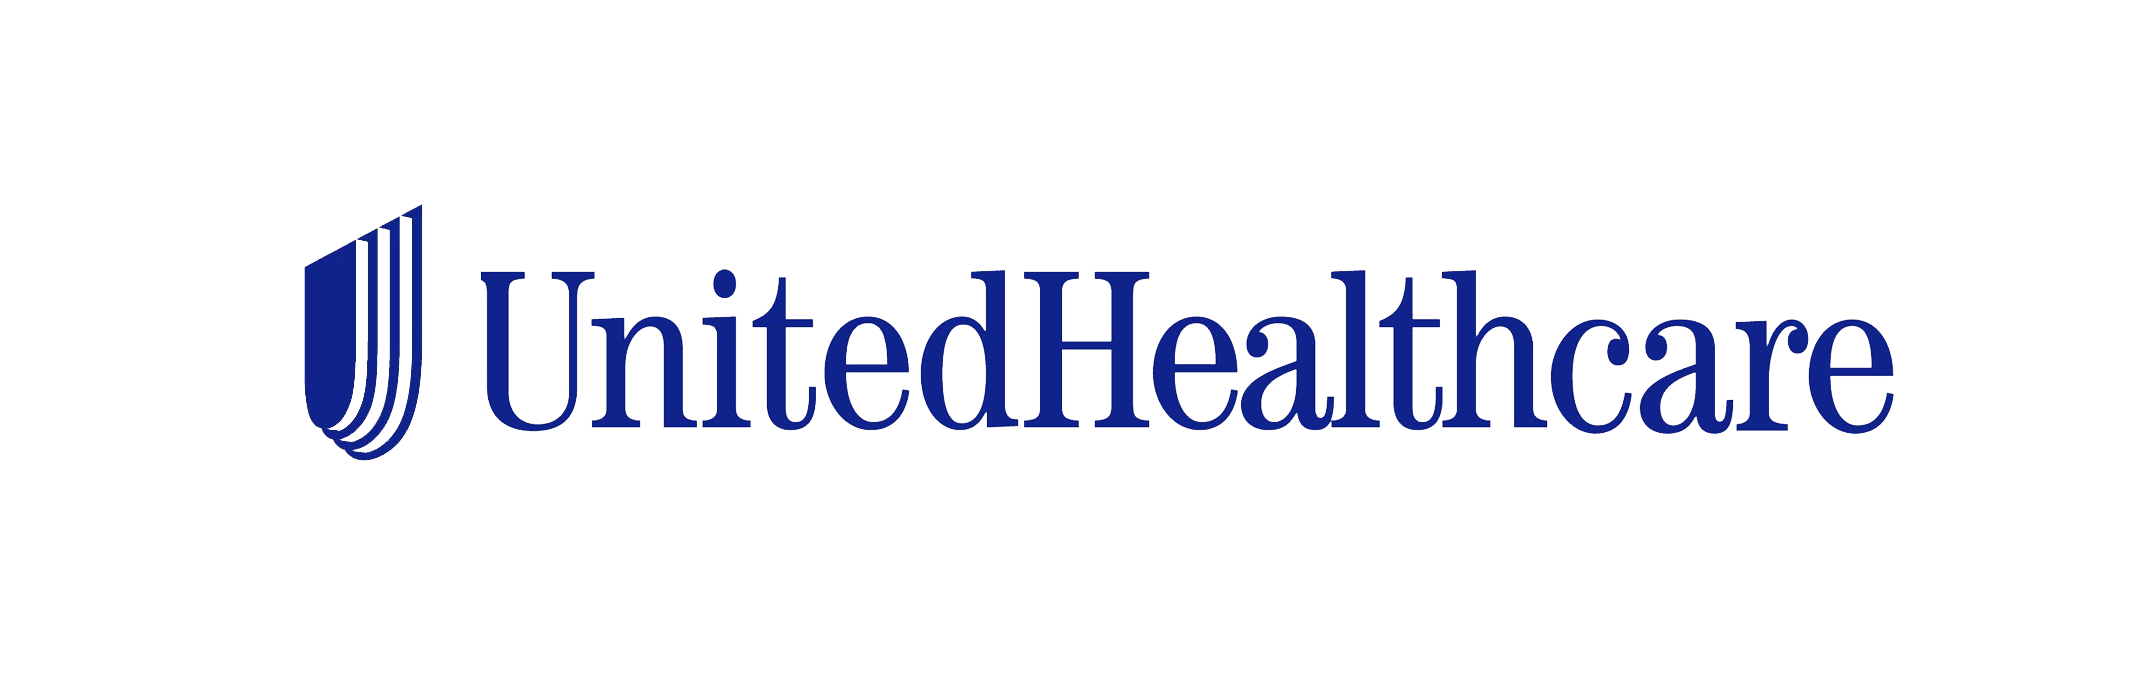 unitedhealthcare.png